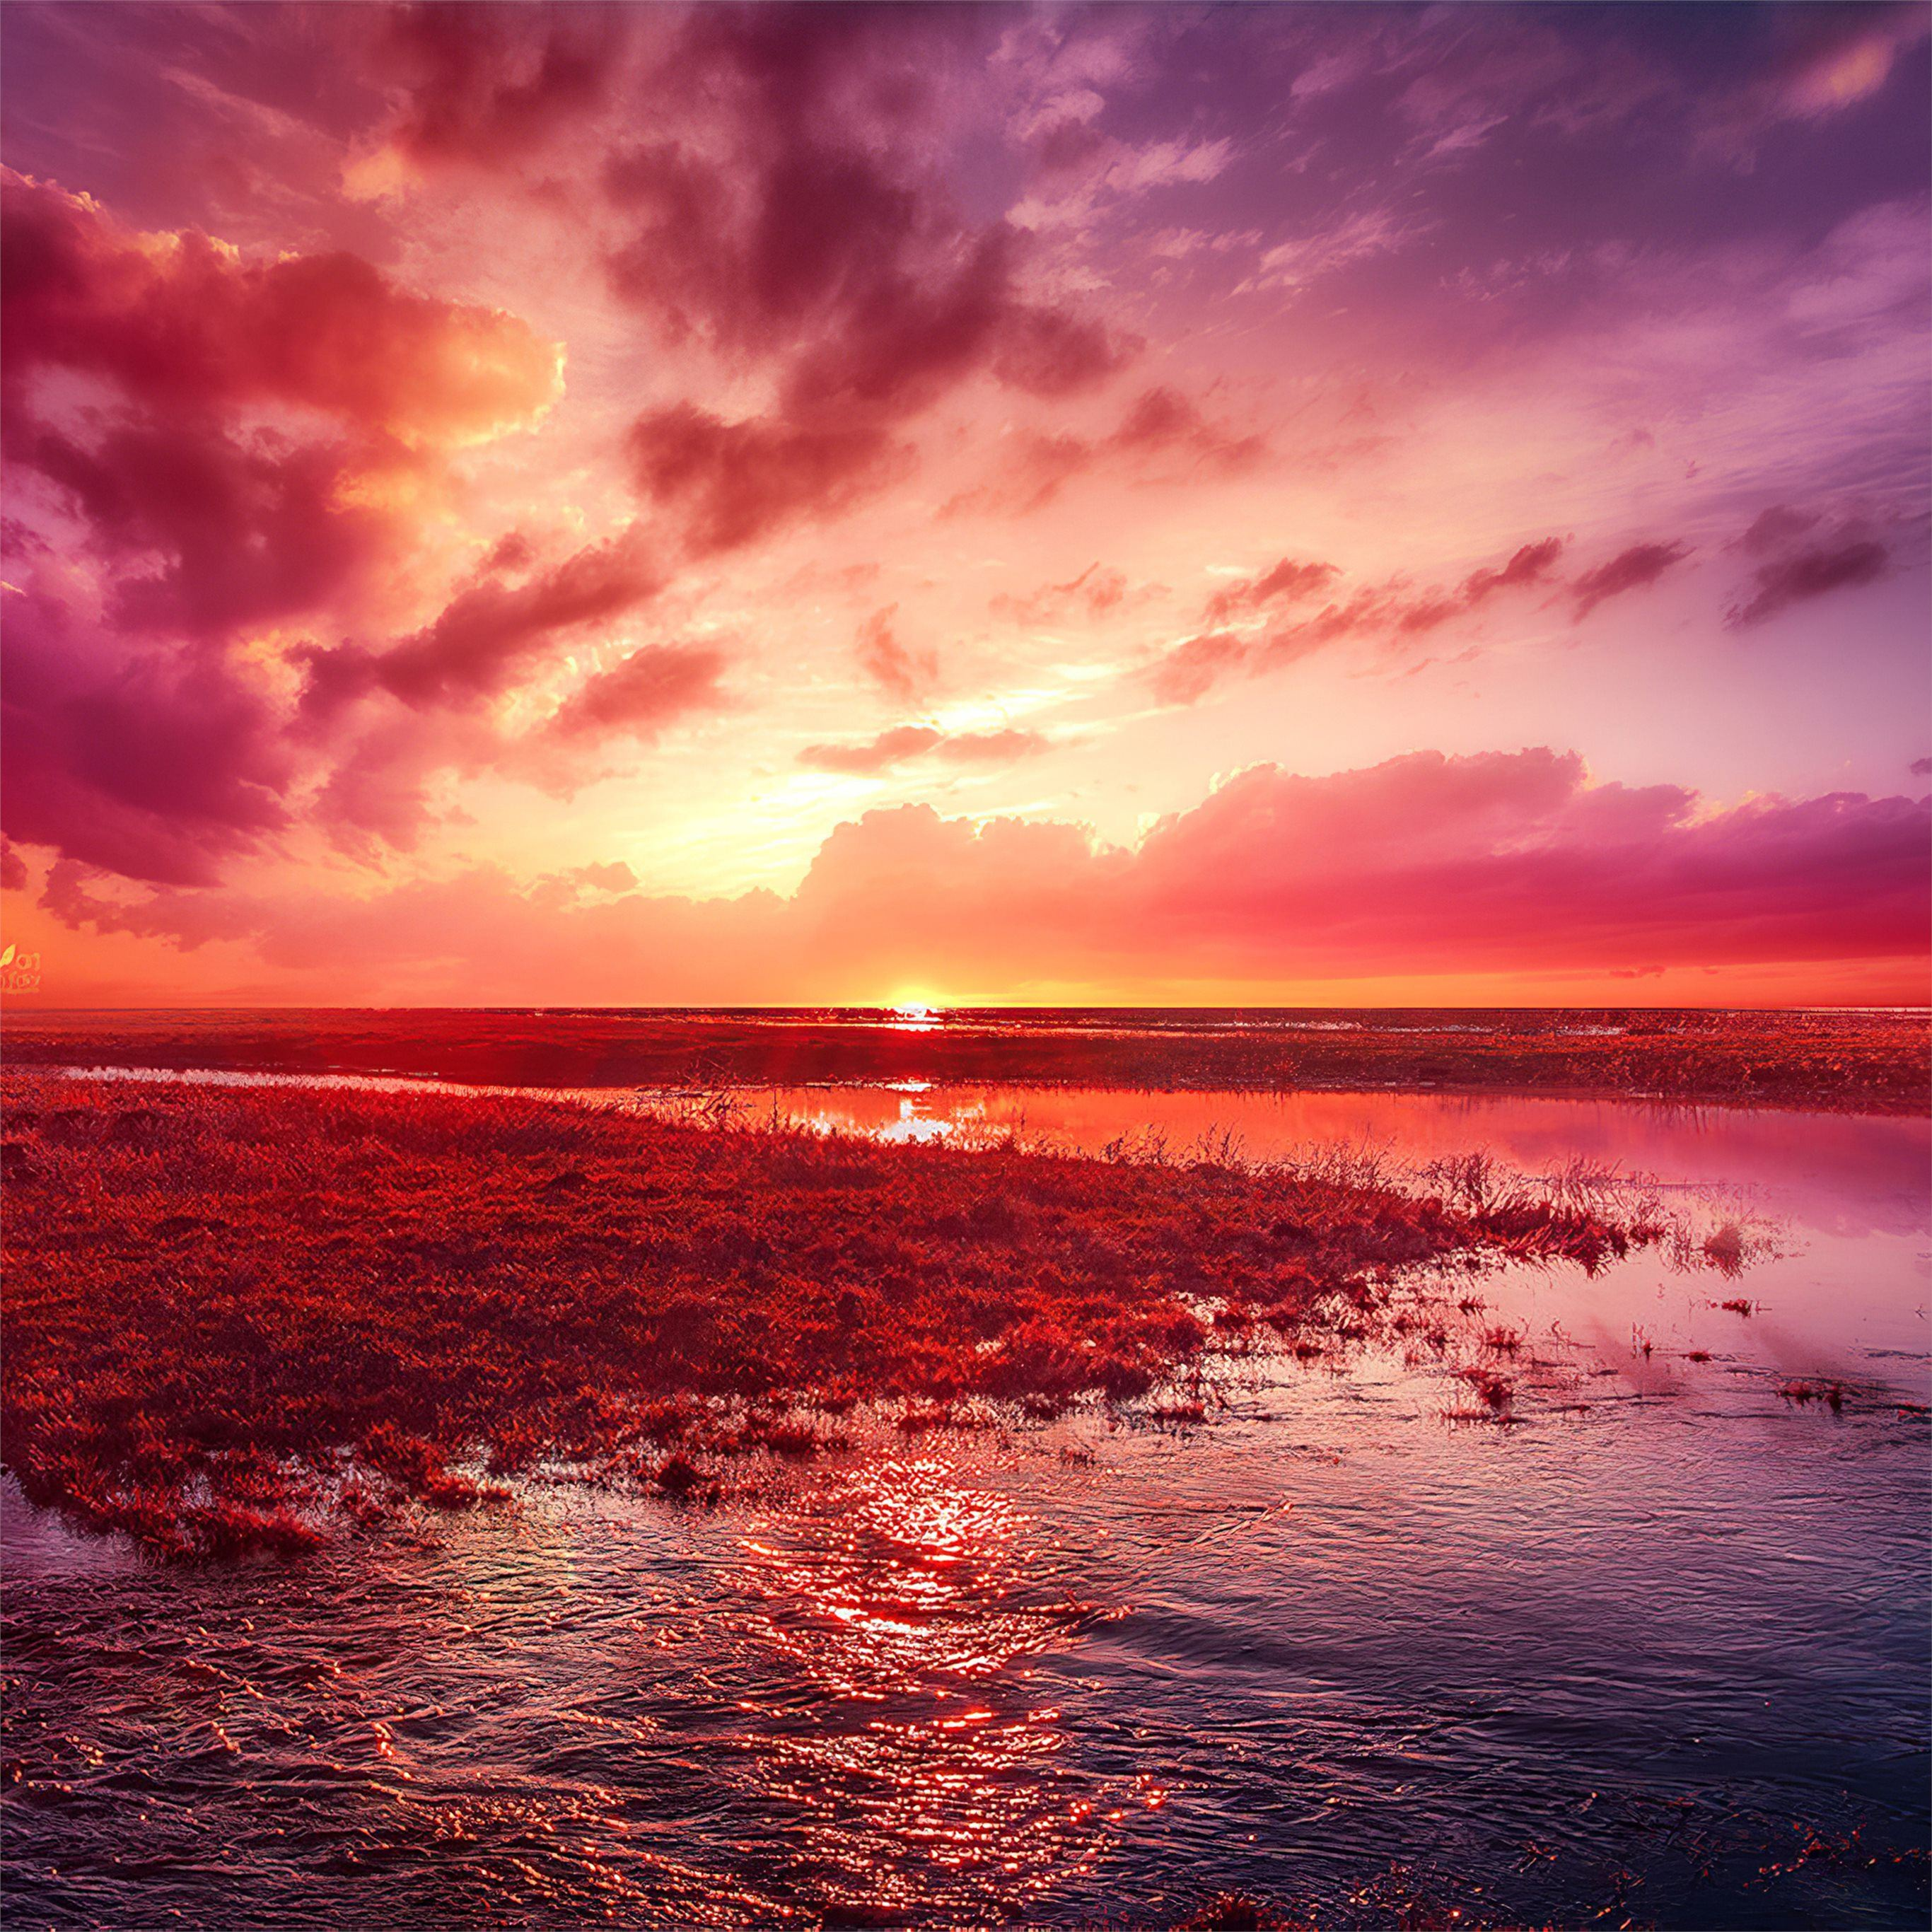 Nature Dream 4k Ipad Pro Wallpapers Free Download